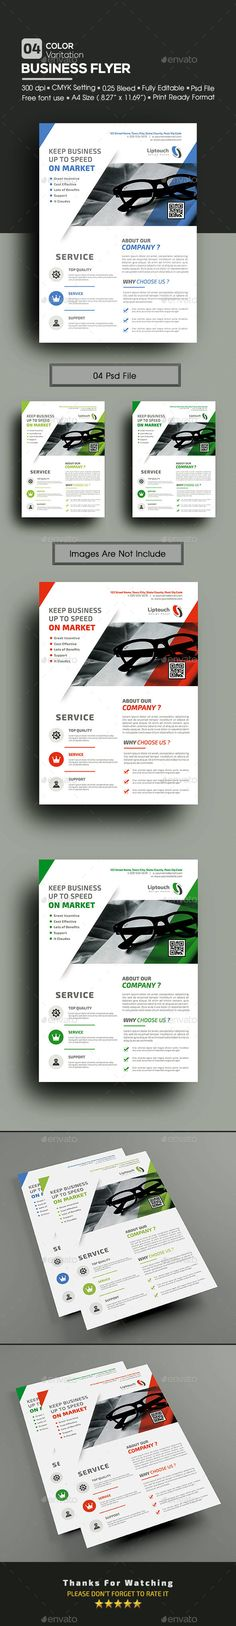 4 Design (Web\/App\/Graphic) Services Flyer\/Poster Classy, Flyers - web flyer template